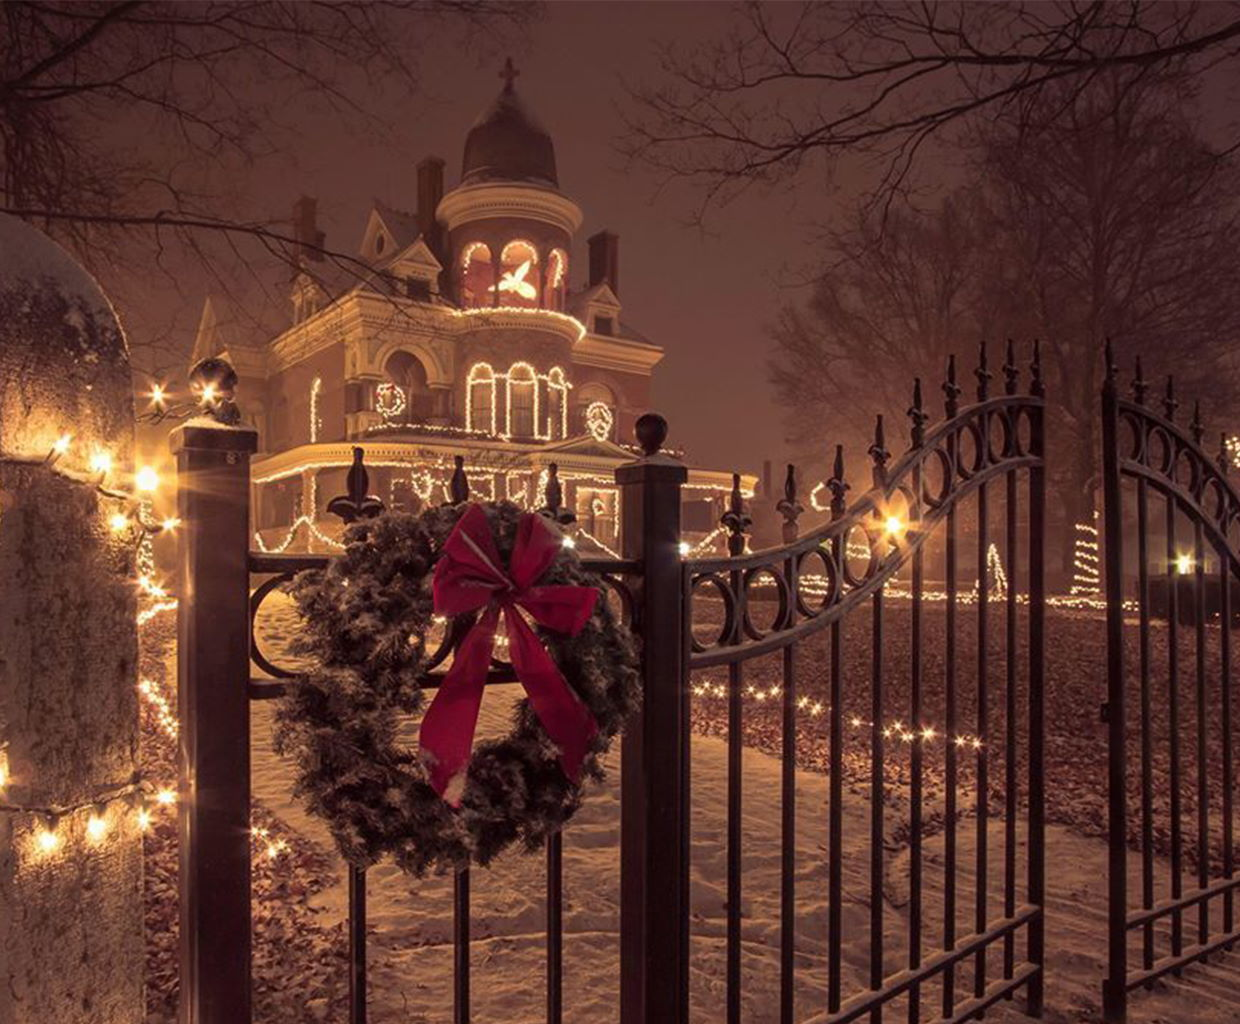 Christmas at the Seiberling Mansion in Kokomo